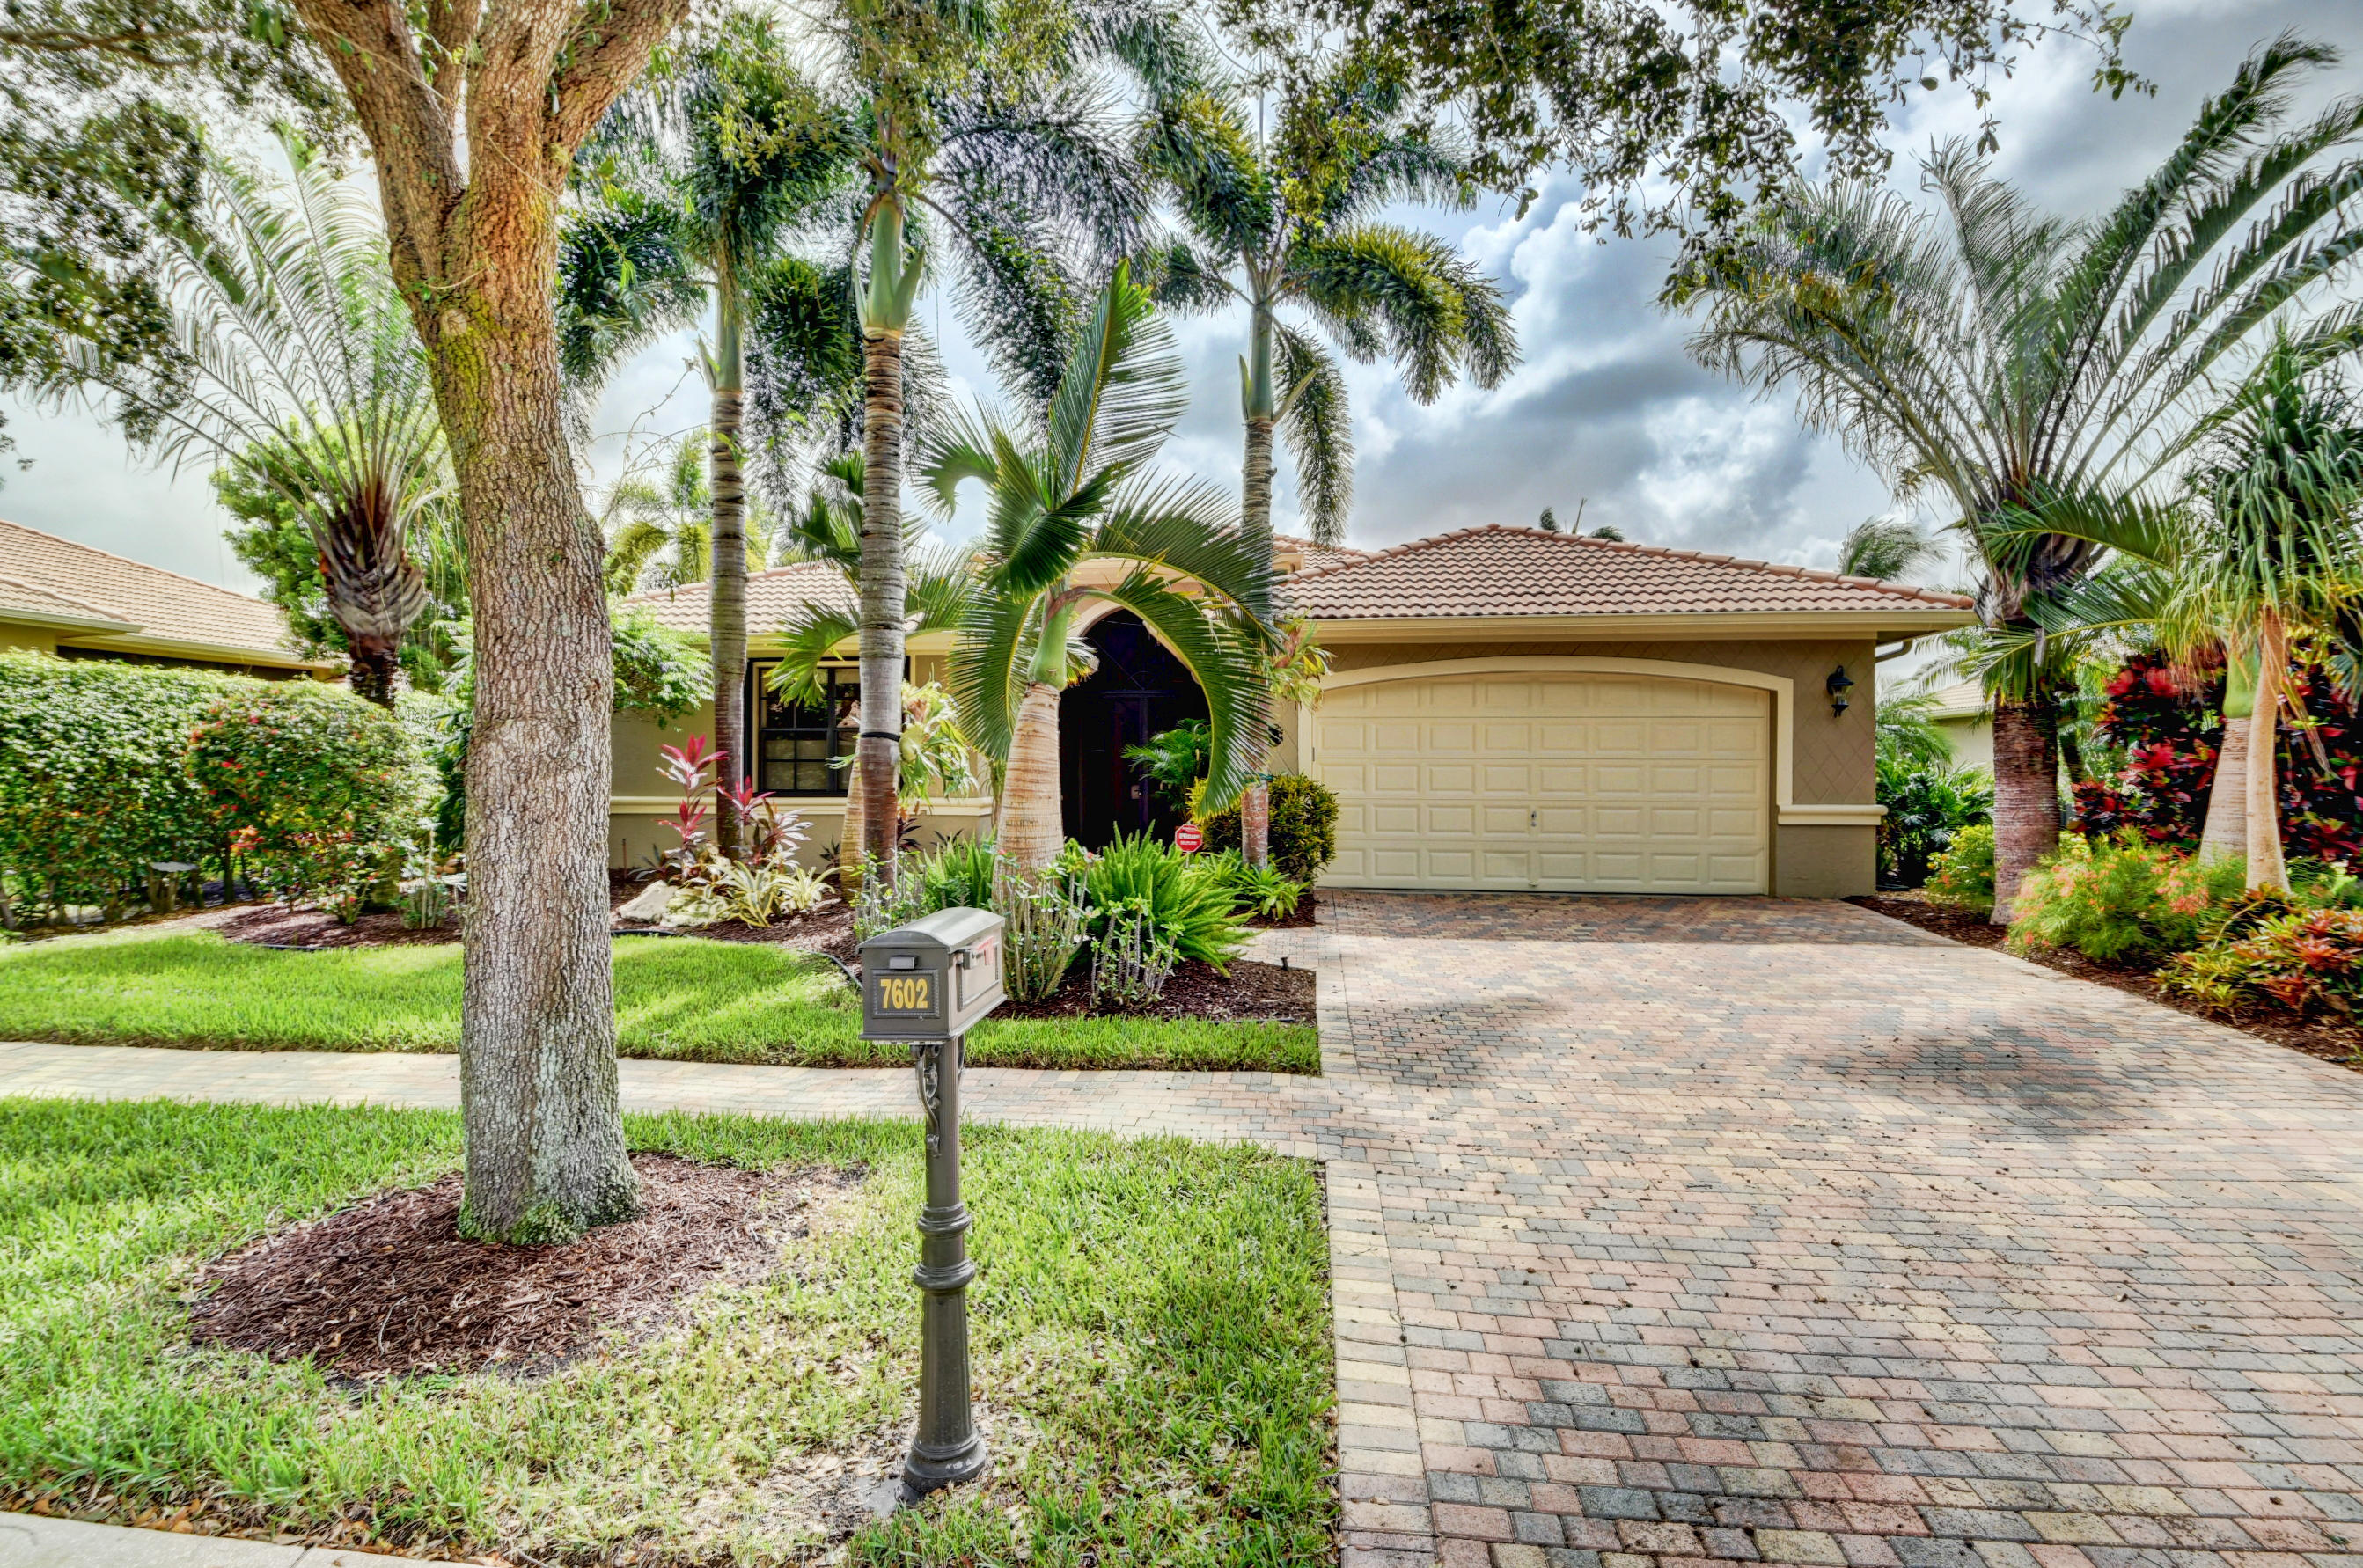 6852 Adriano Drive Boynton Beach 33437 - photo